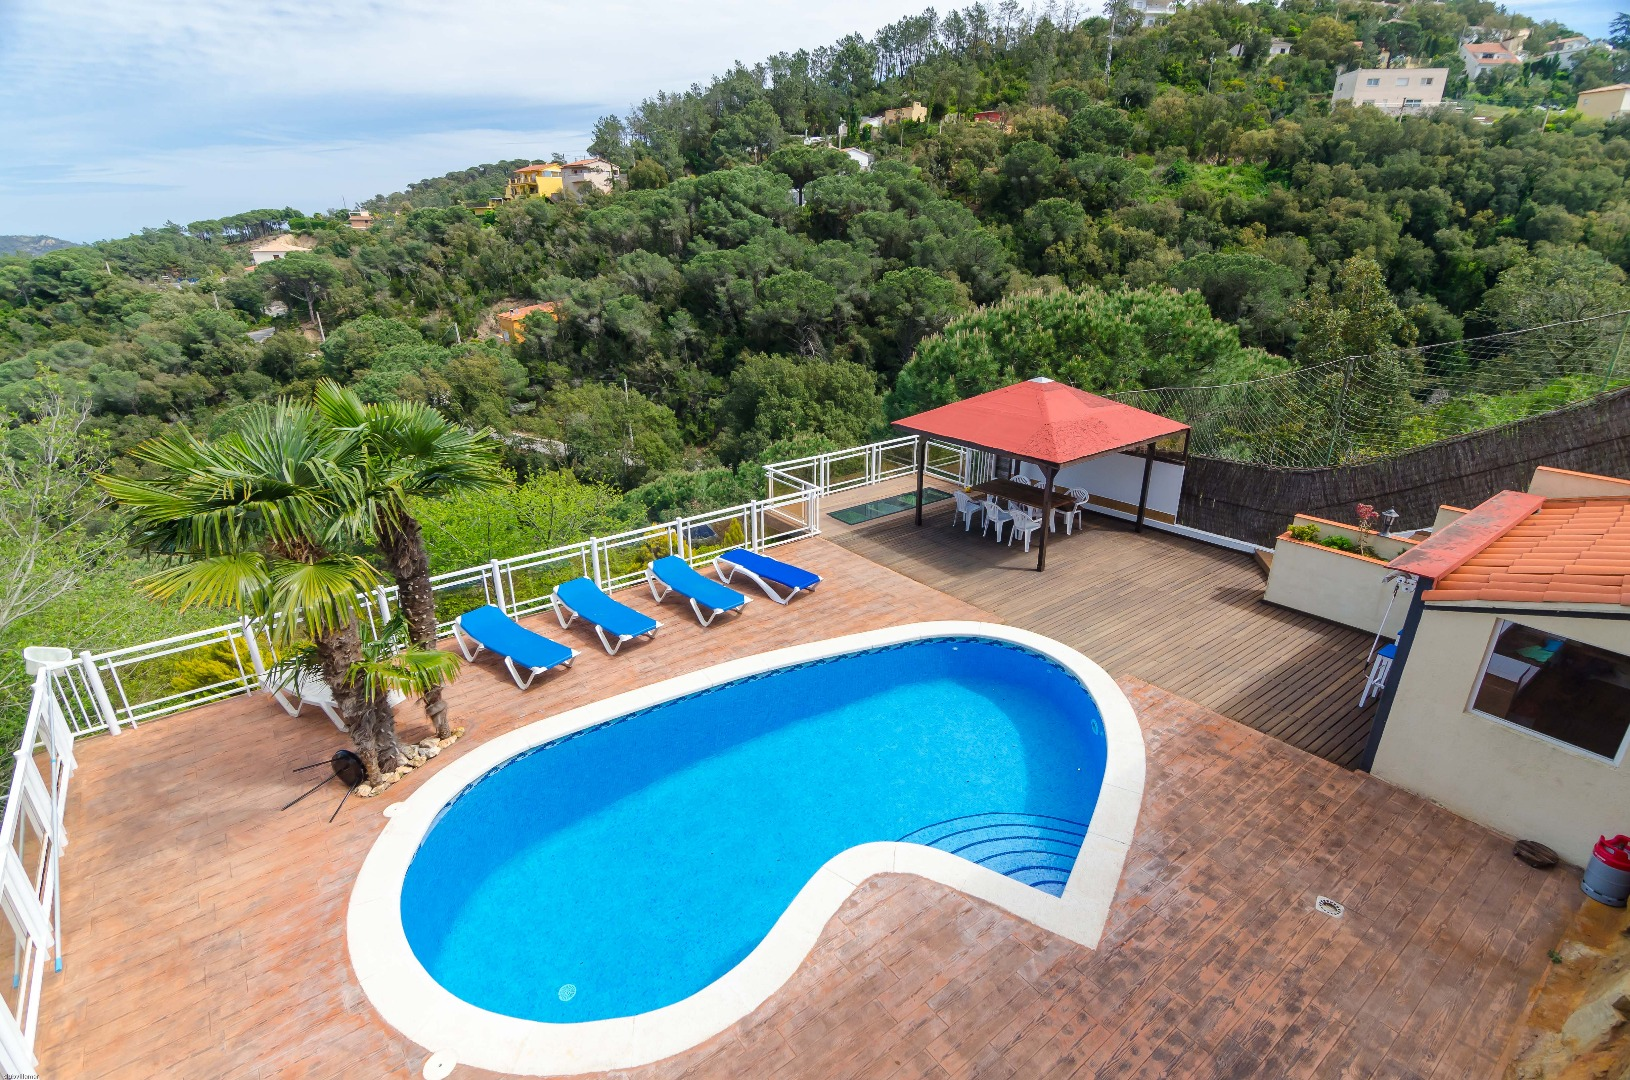 Spacious luxury villa near Lloret de Mar - with a lovely swimmingpool.